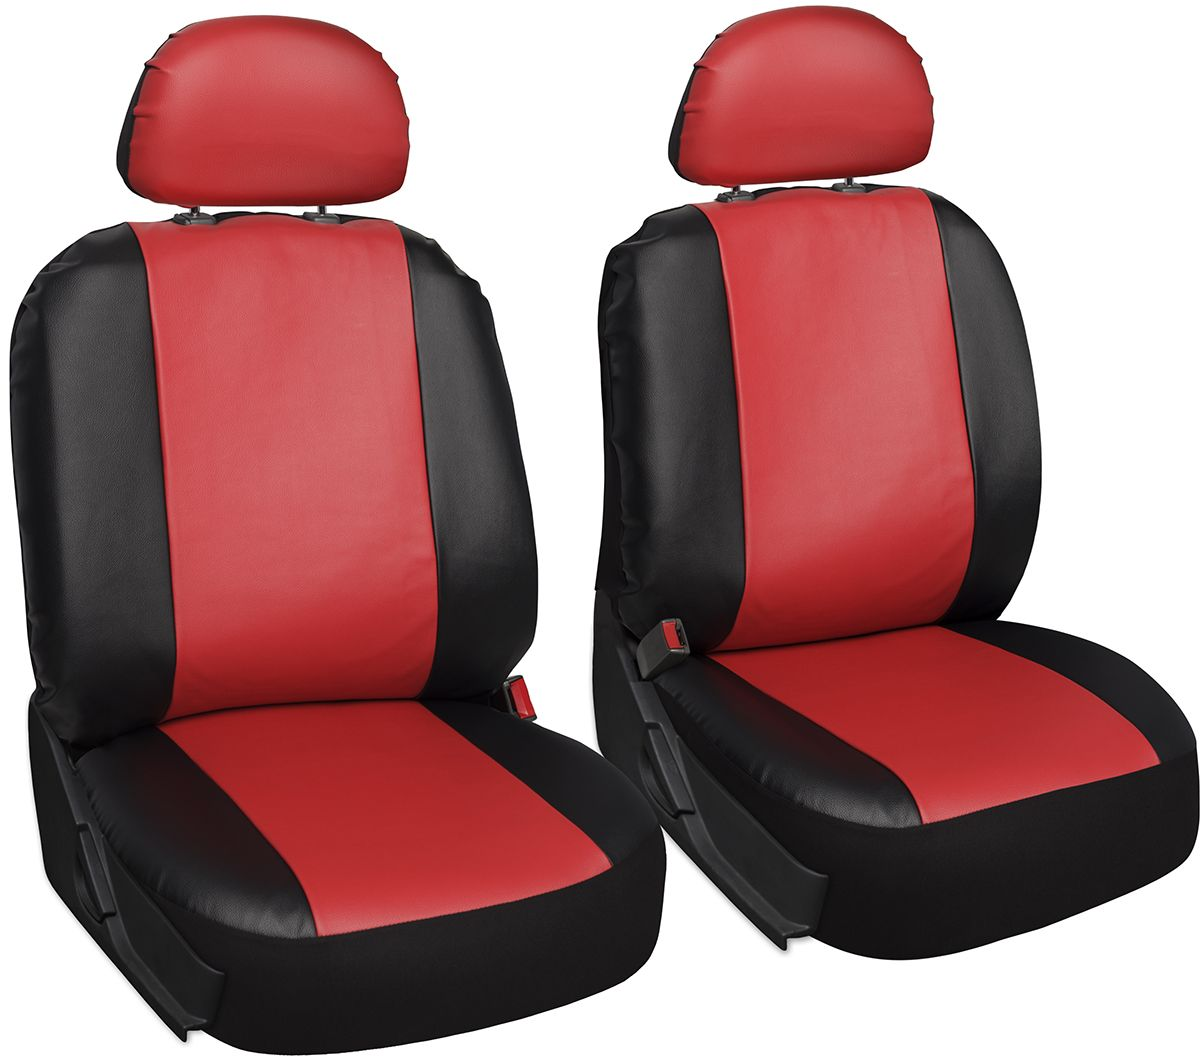 //www.ebay.com/itm/Faux-Leather-Car-Seat-Covers-Black-Red-6pc ... on golf cartoons, golf players, golf buggy, golf accessories, golf handicap, golf trolley, golf games, golf card, golf hitting nets, golf tools, golf girls, golf machine, golf words,